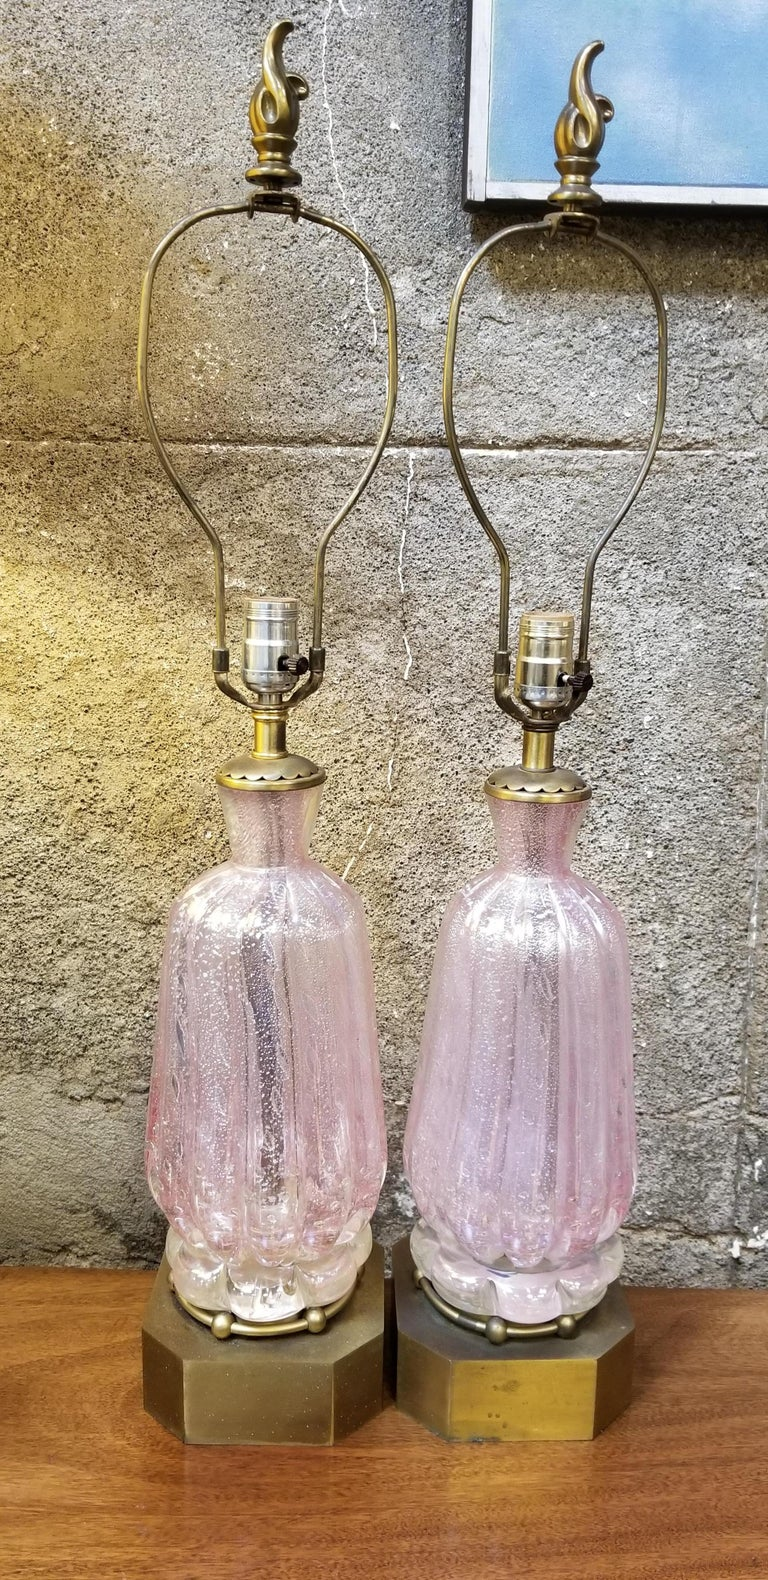 A pair of hand blown Murano glass table lamps, pink bubble glass with floating silver leaf detail. Original, vintage condition. Original brass bases. Original harps and flame brass finials, circa 1960s. No shades. Glass only measures 13.25 inches in